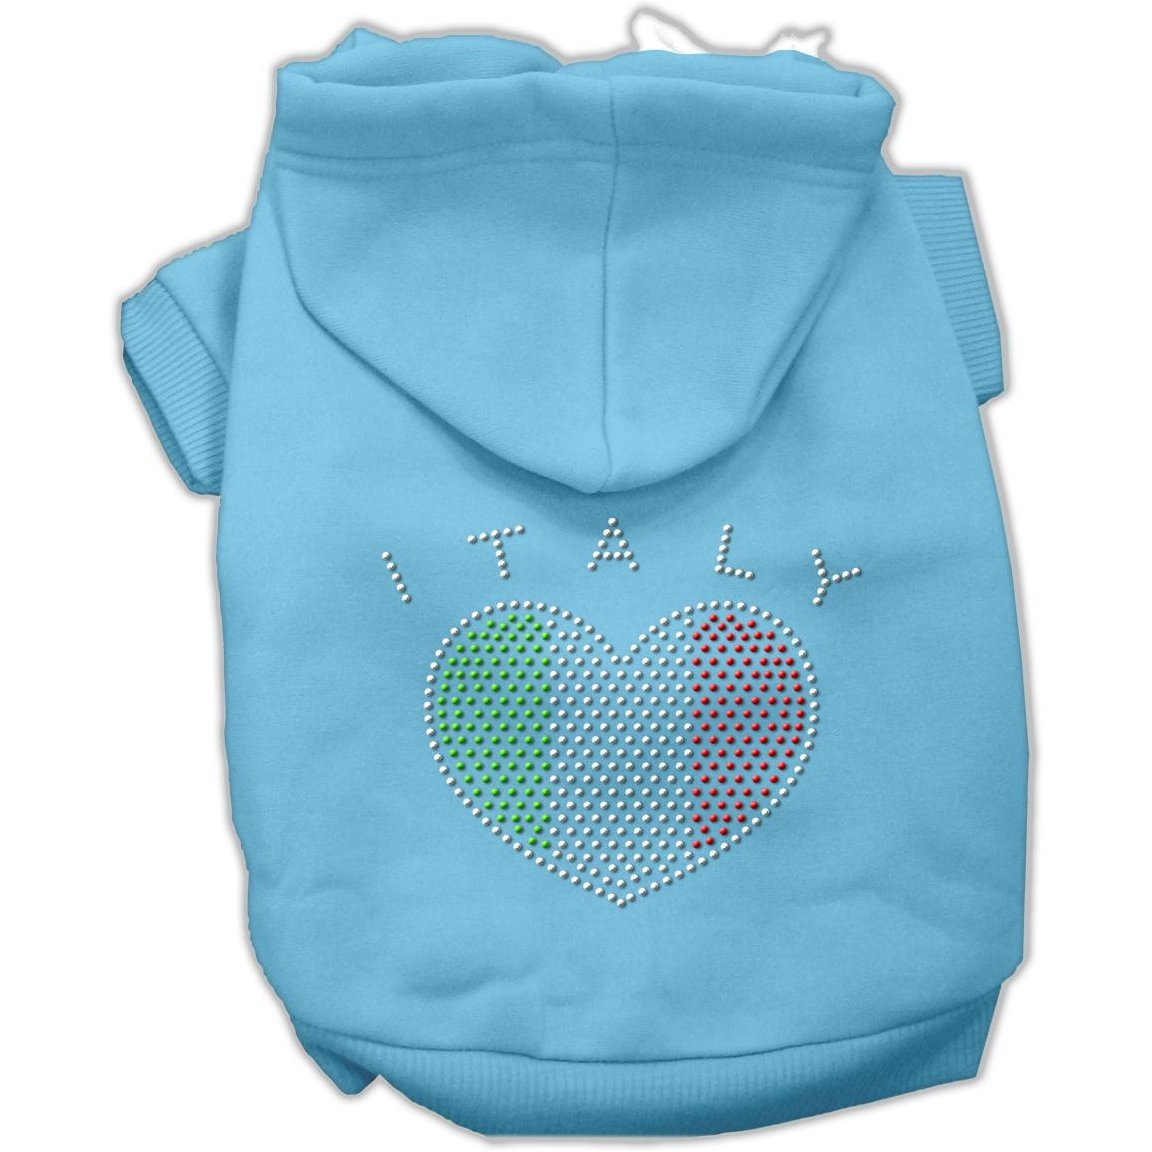 Mirage Pet Products Italian Rhinestone Hoodies, Baby bluee, Small